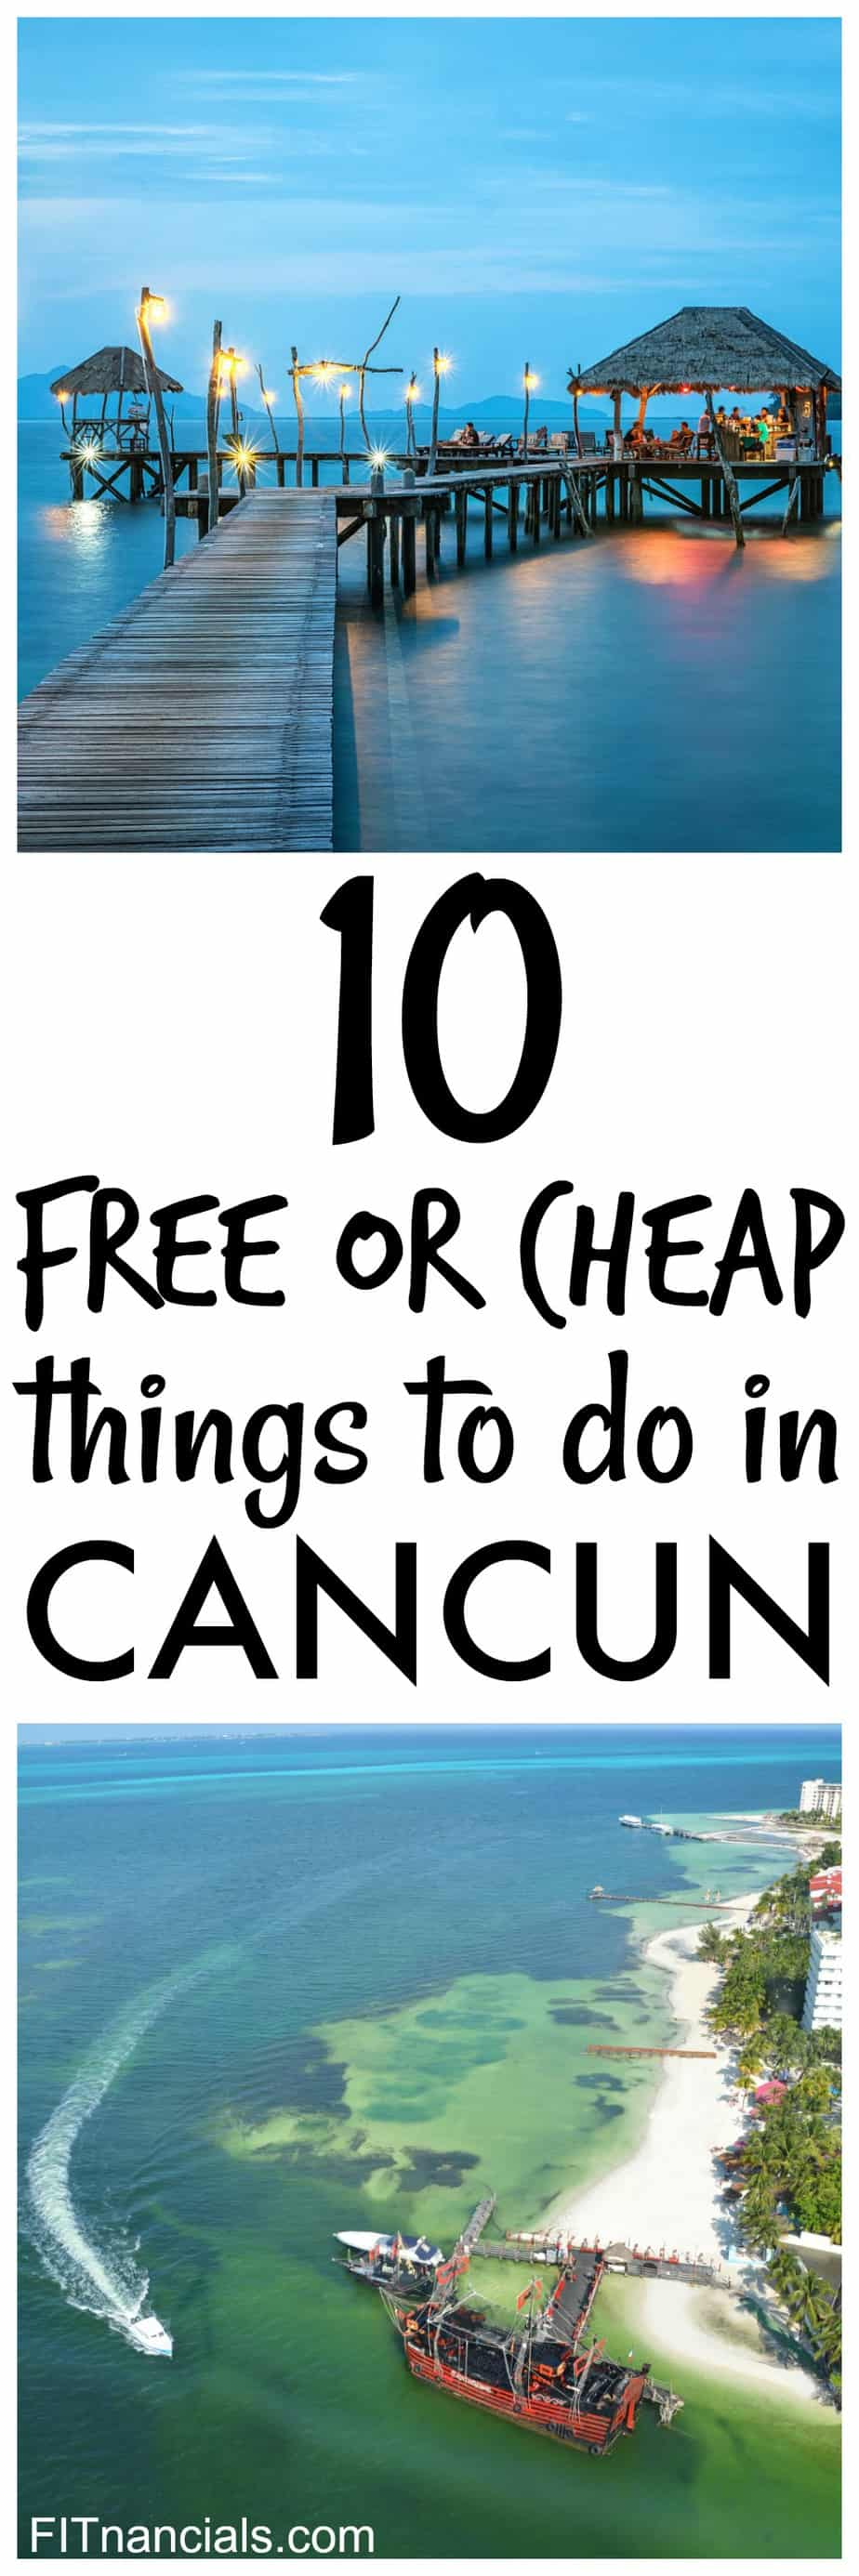 Check out this list of 10 free or cheap things to do in Cancun! This is such a great list.